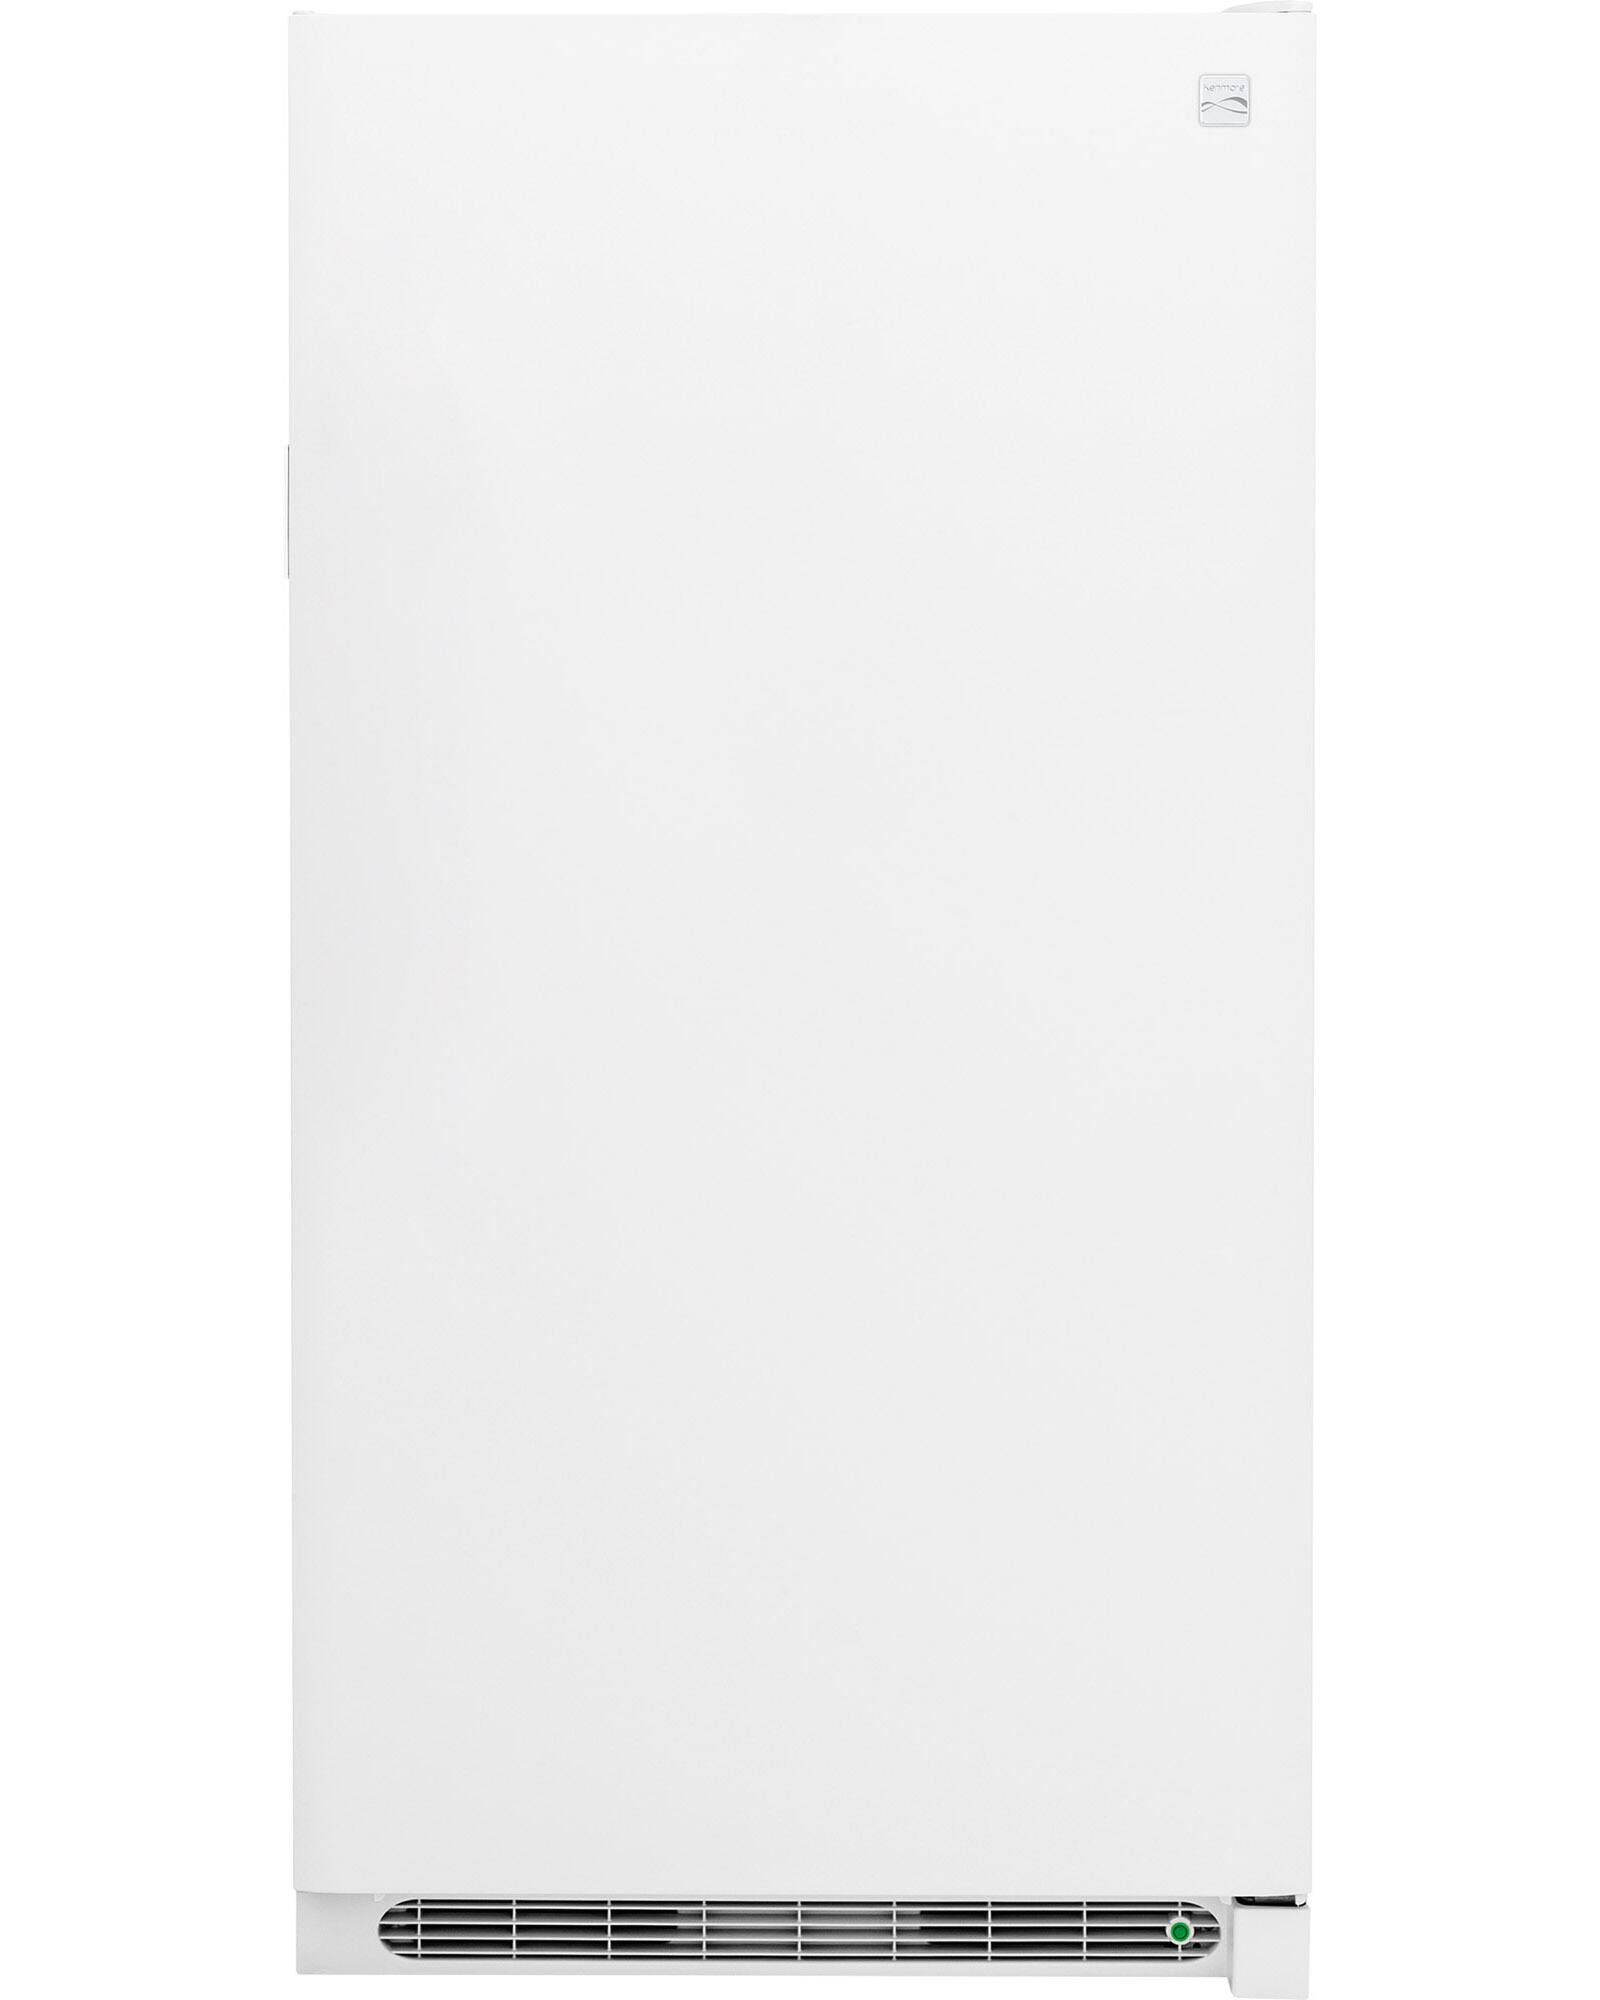 Kenmore  17.3 cu. ft. Upright Freezer - White $355 after coupon, in store pick up YMMV